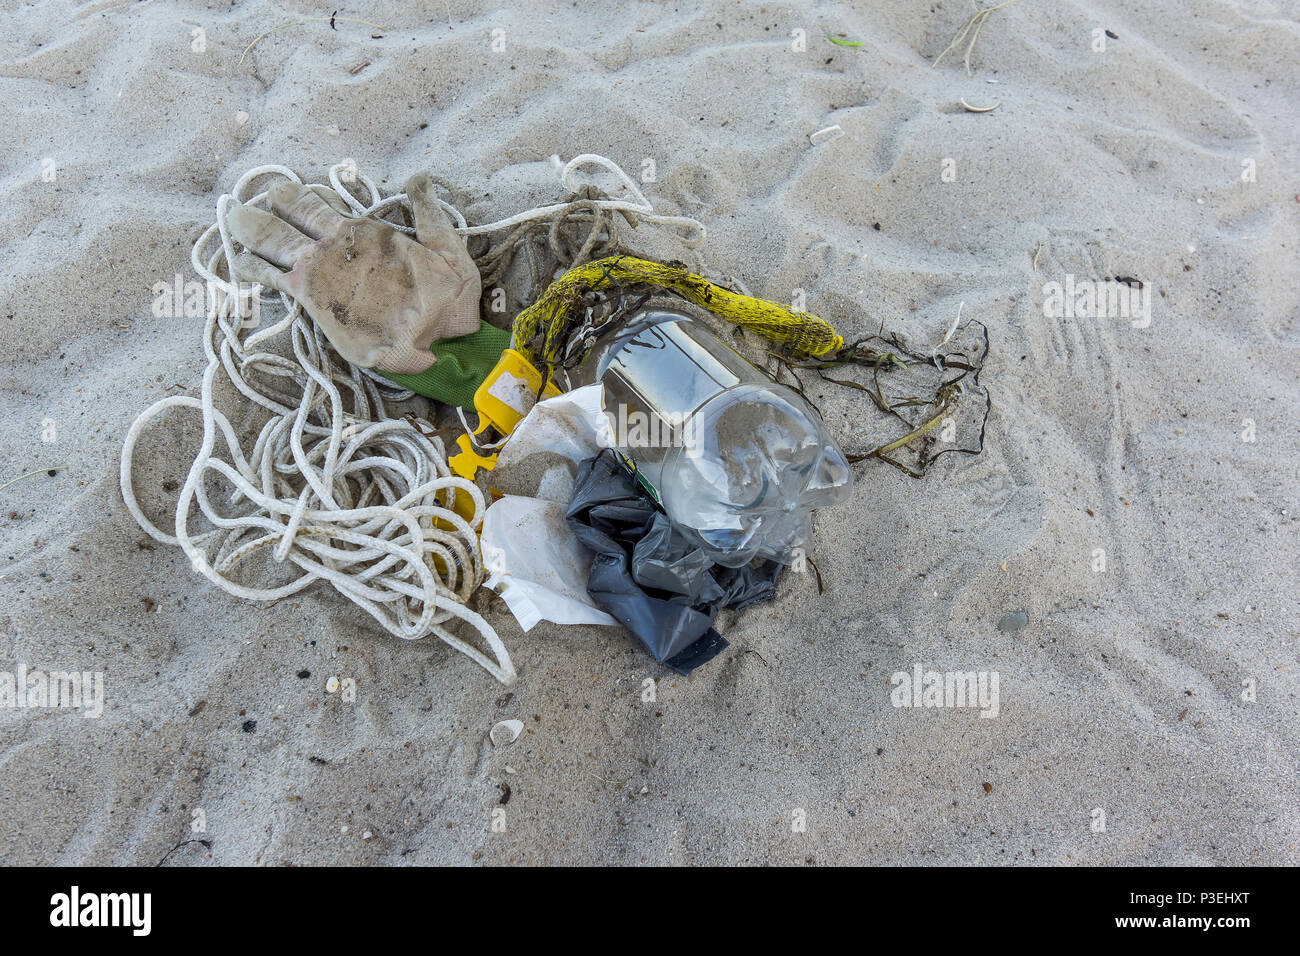 A plastic bottle and other rubbish on the sand, a closeup of a polluted beach, Vejle, Denmark, June 6, 2018 - Stock Image